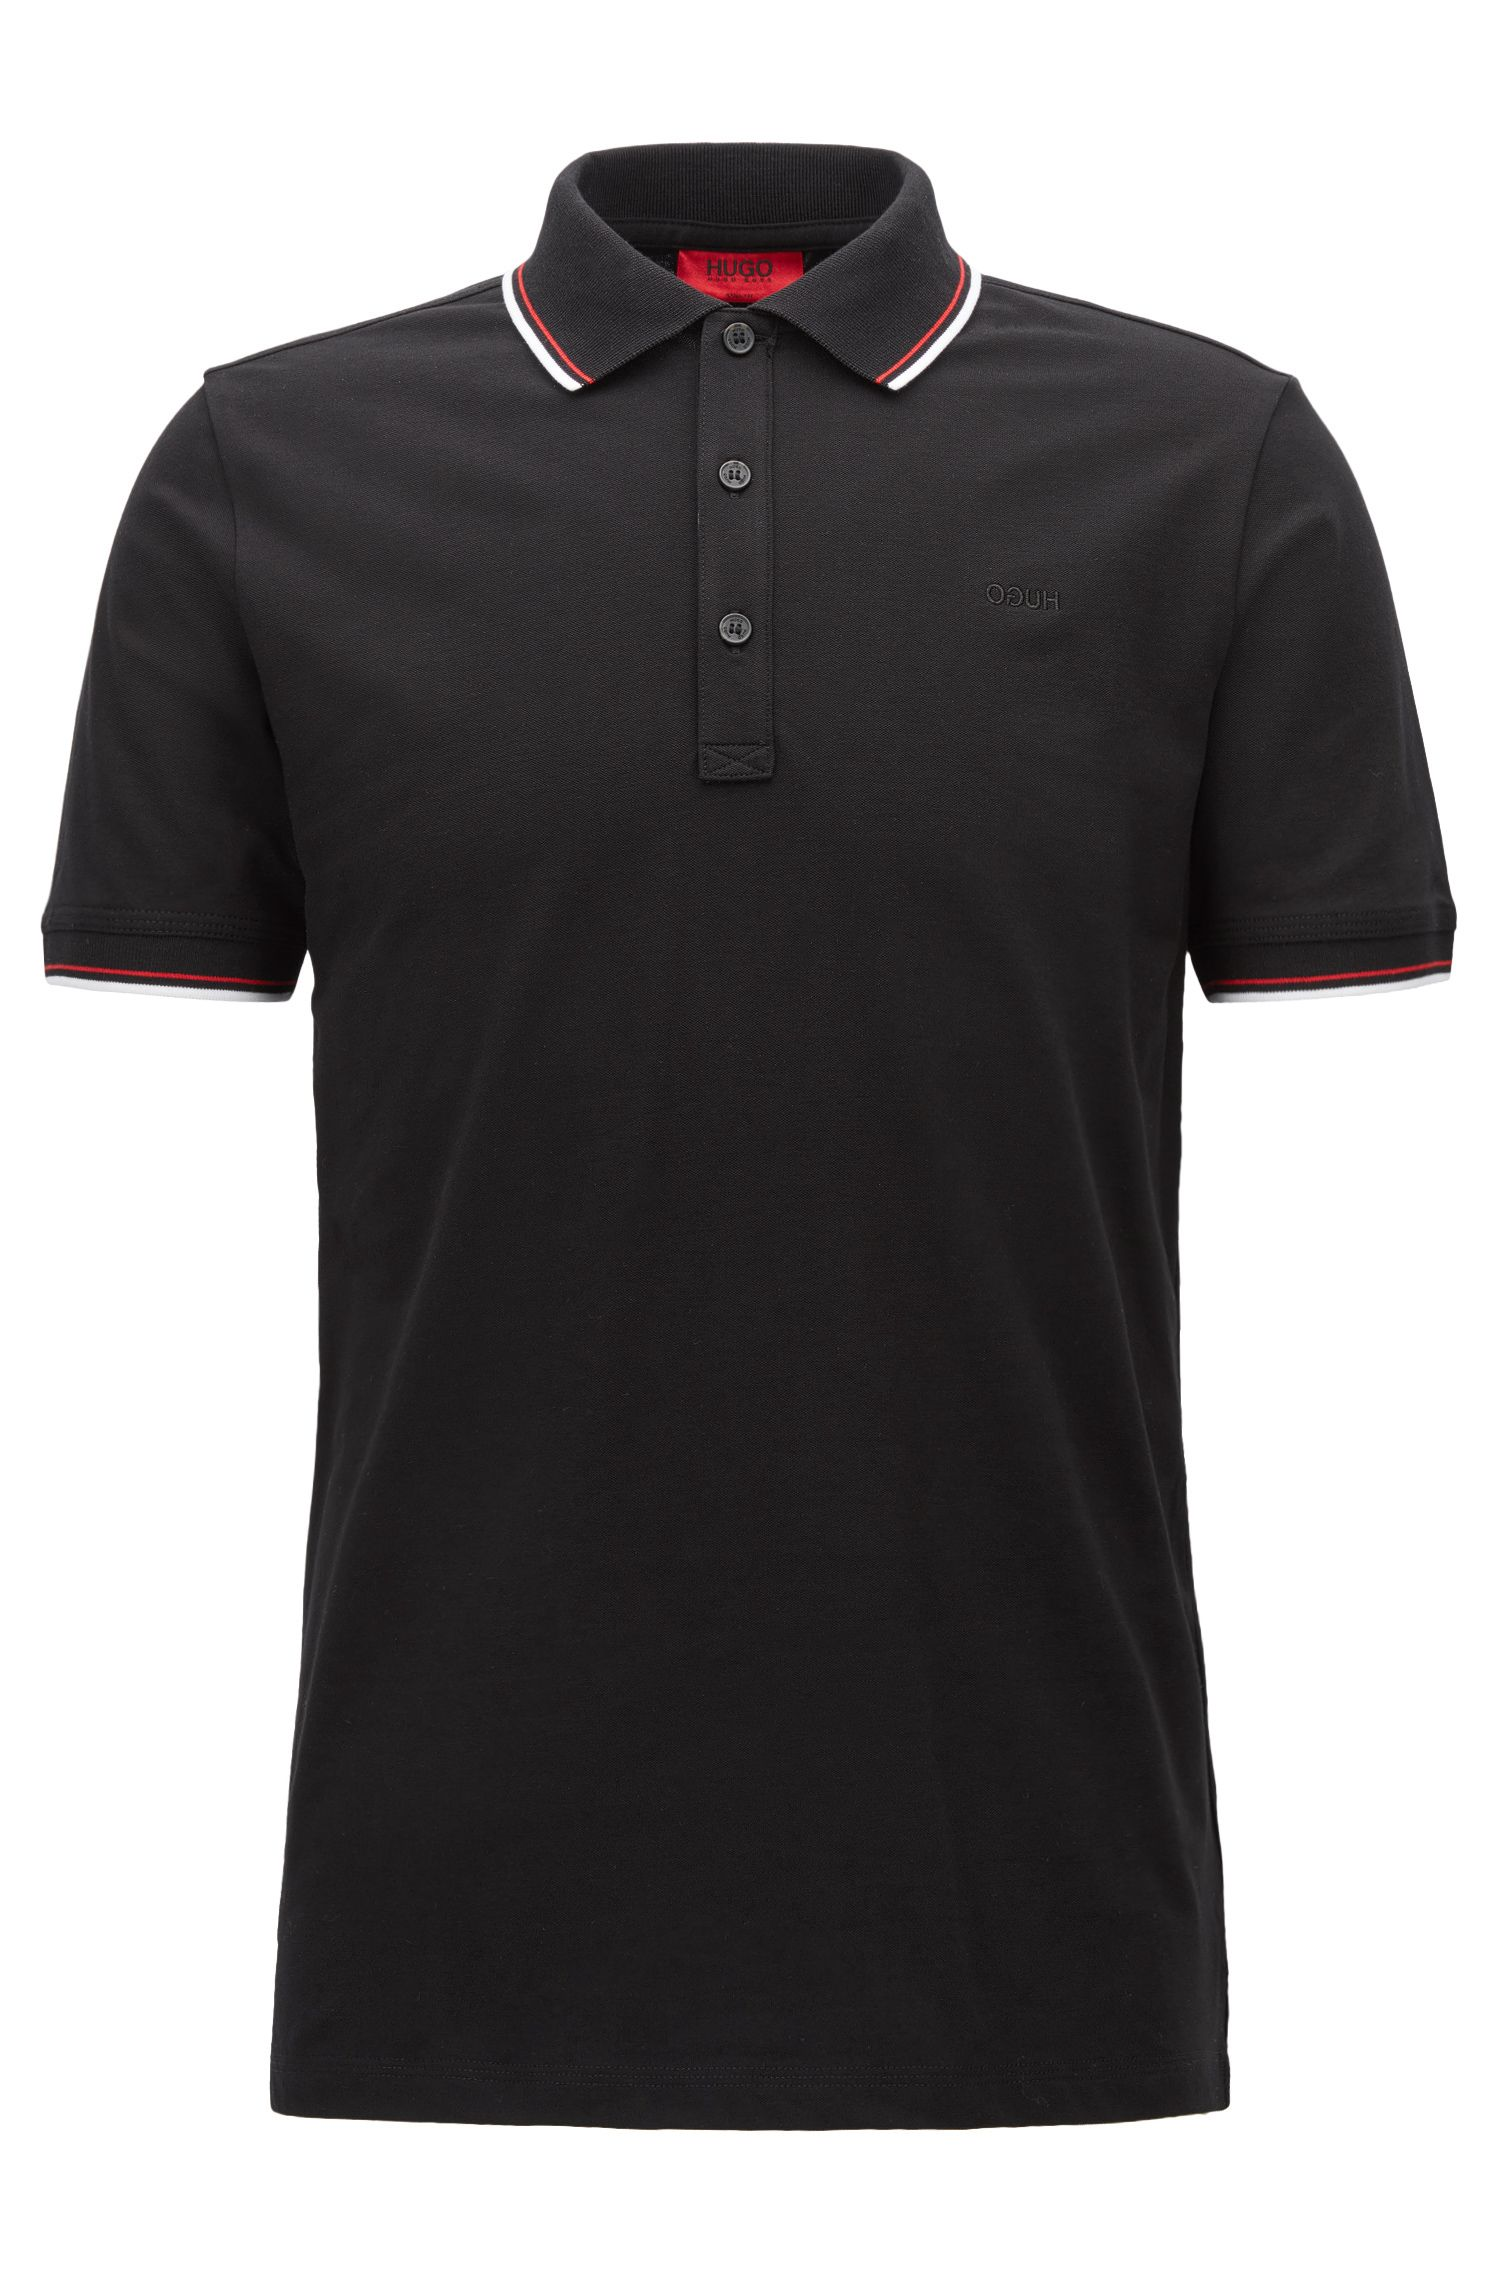 'Dasto' | Slim Fit, Stretch Cotton Polo Shirt